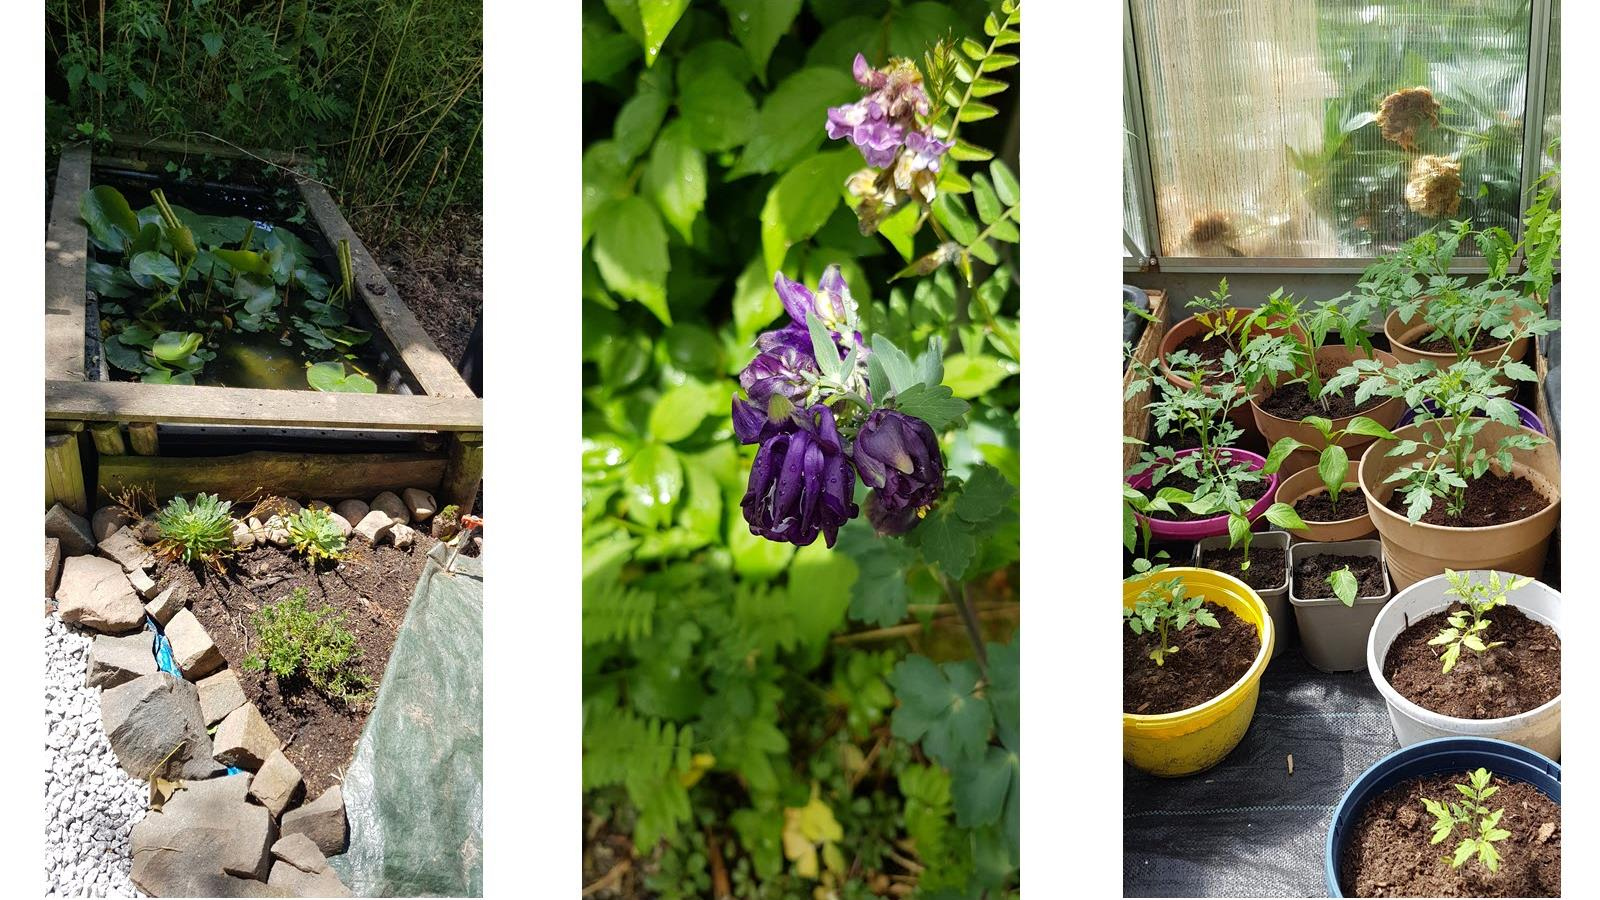 Flowers and plants in various stages in an outdoor garden